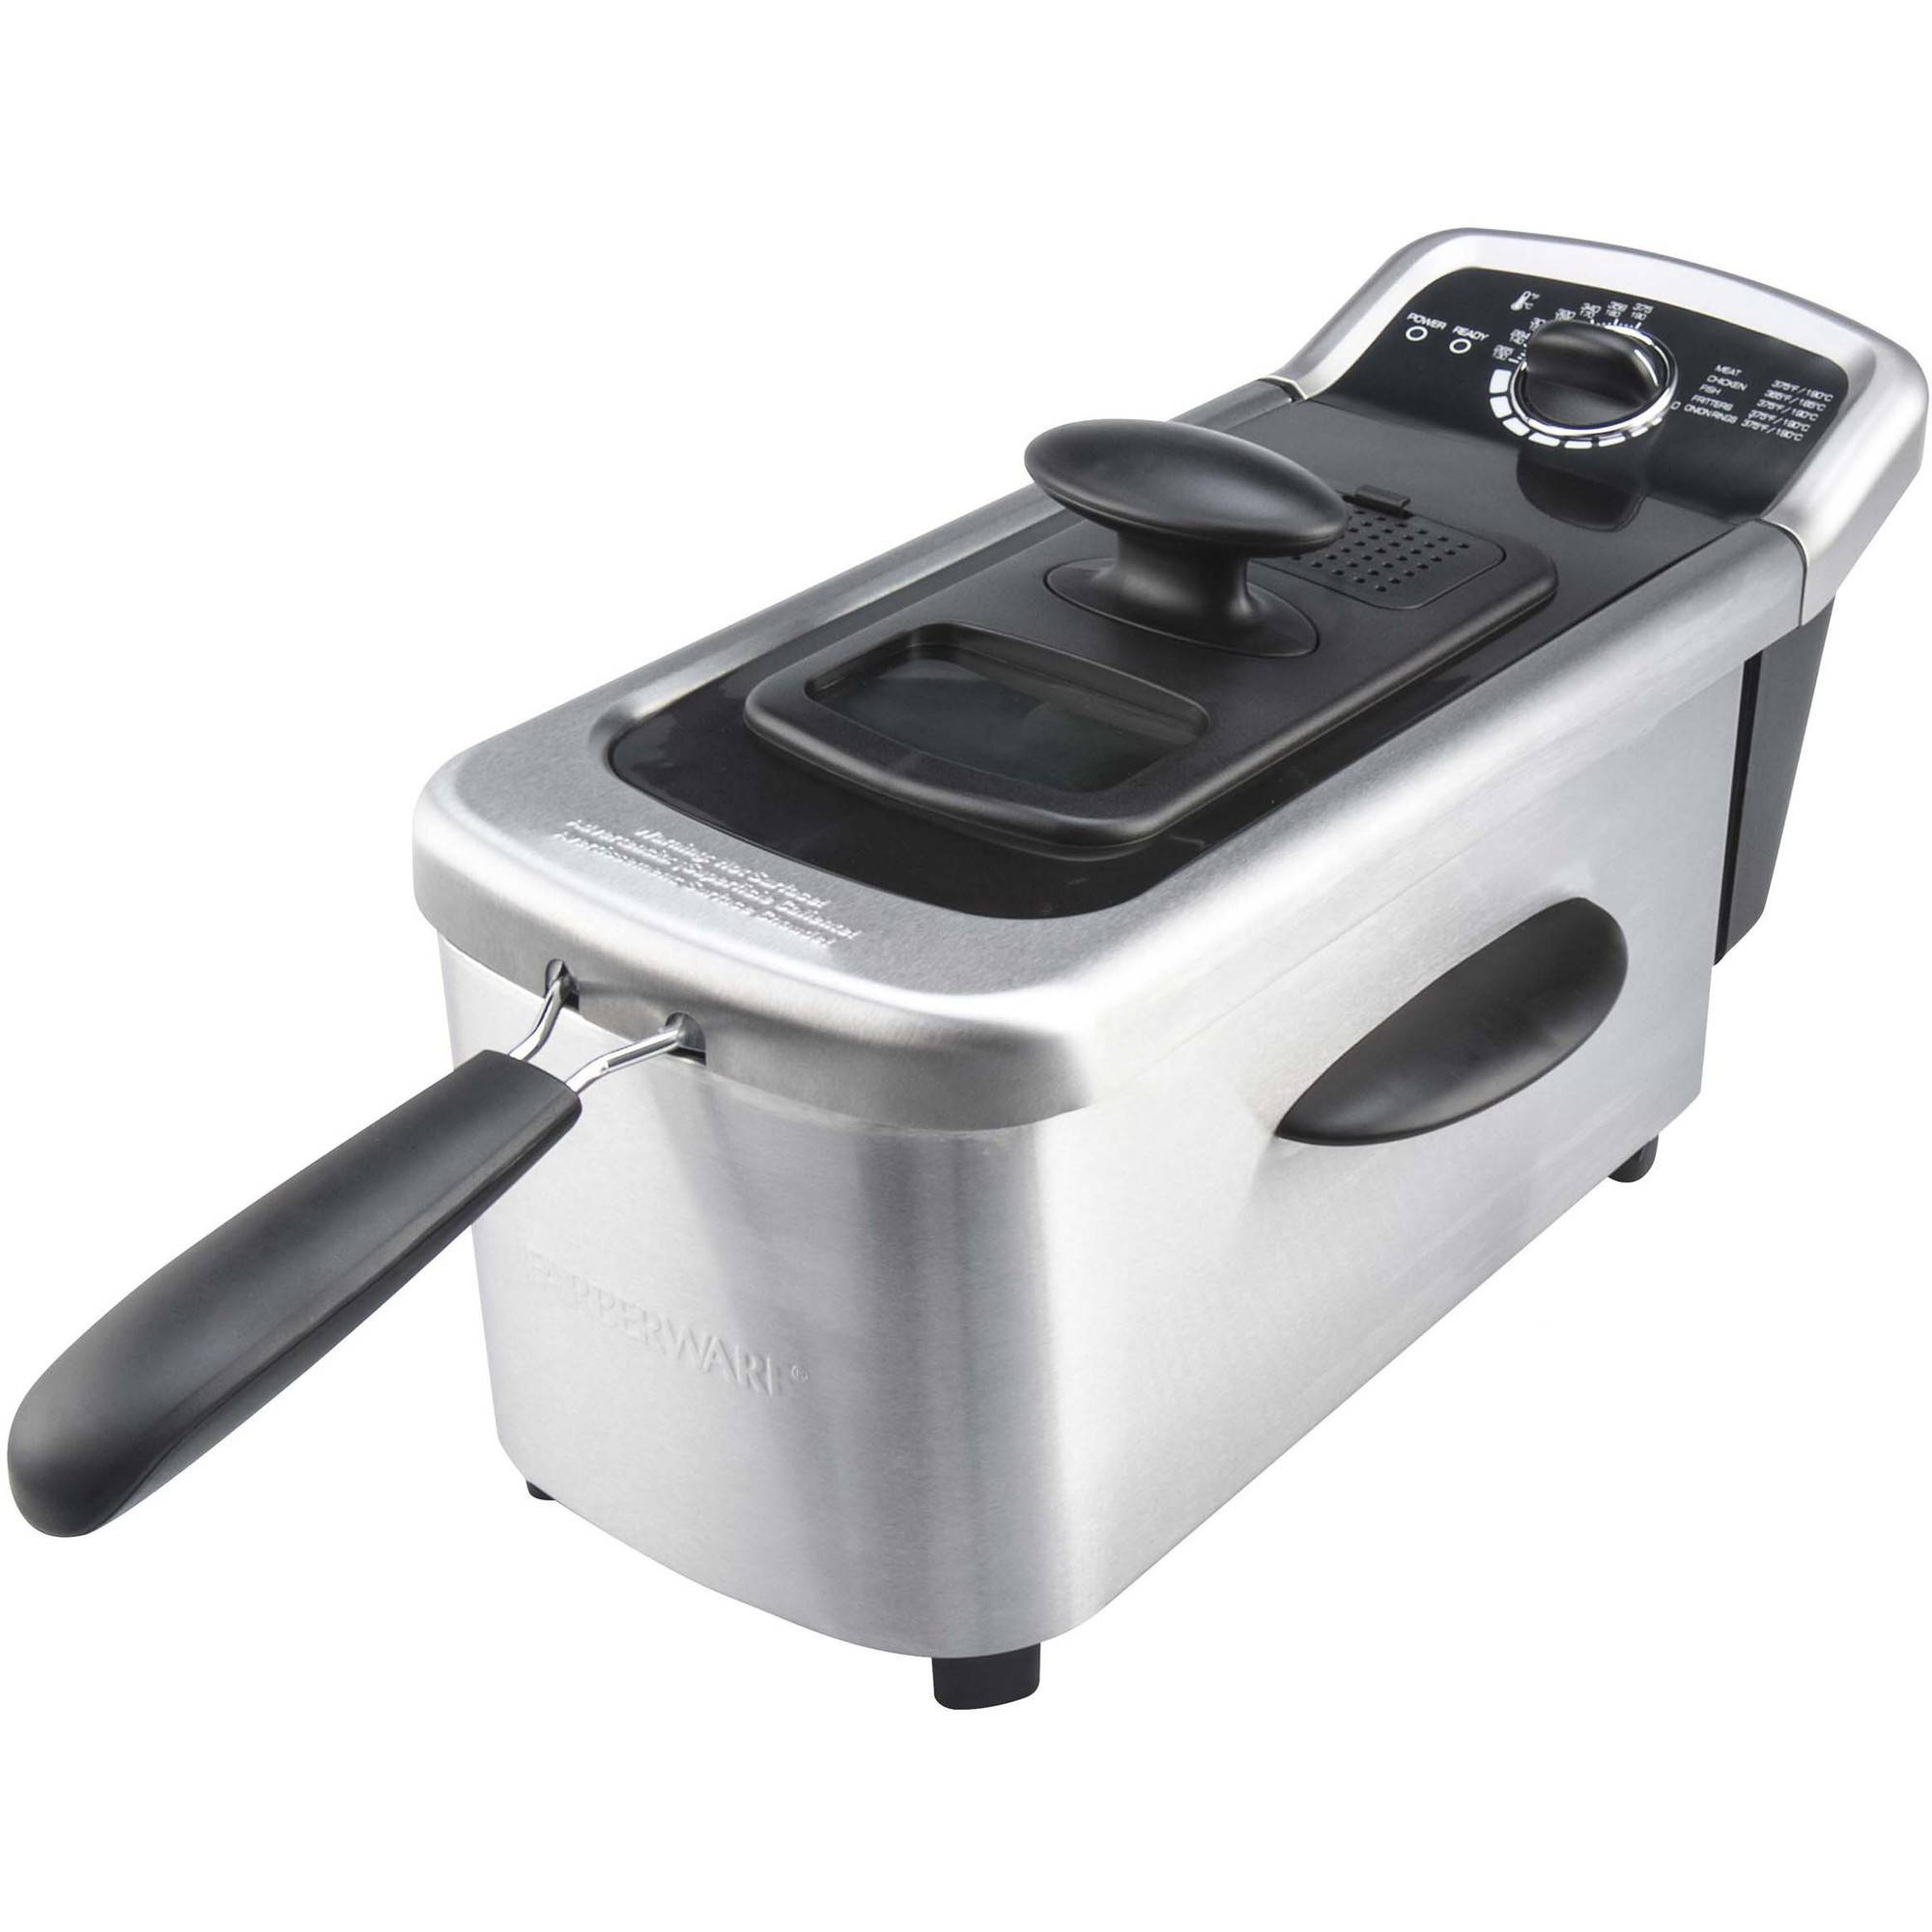 farberware 4 liter deep fryer instructions